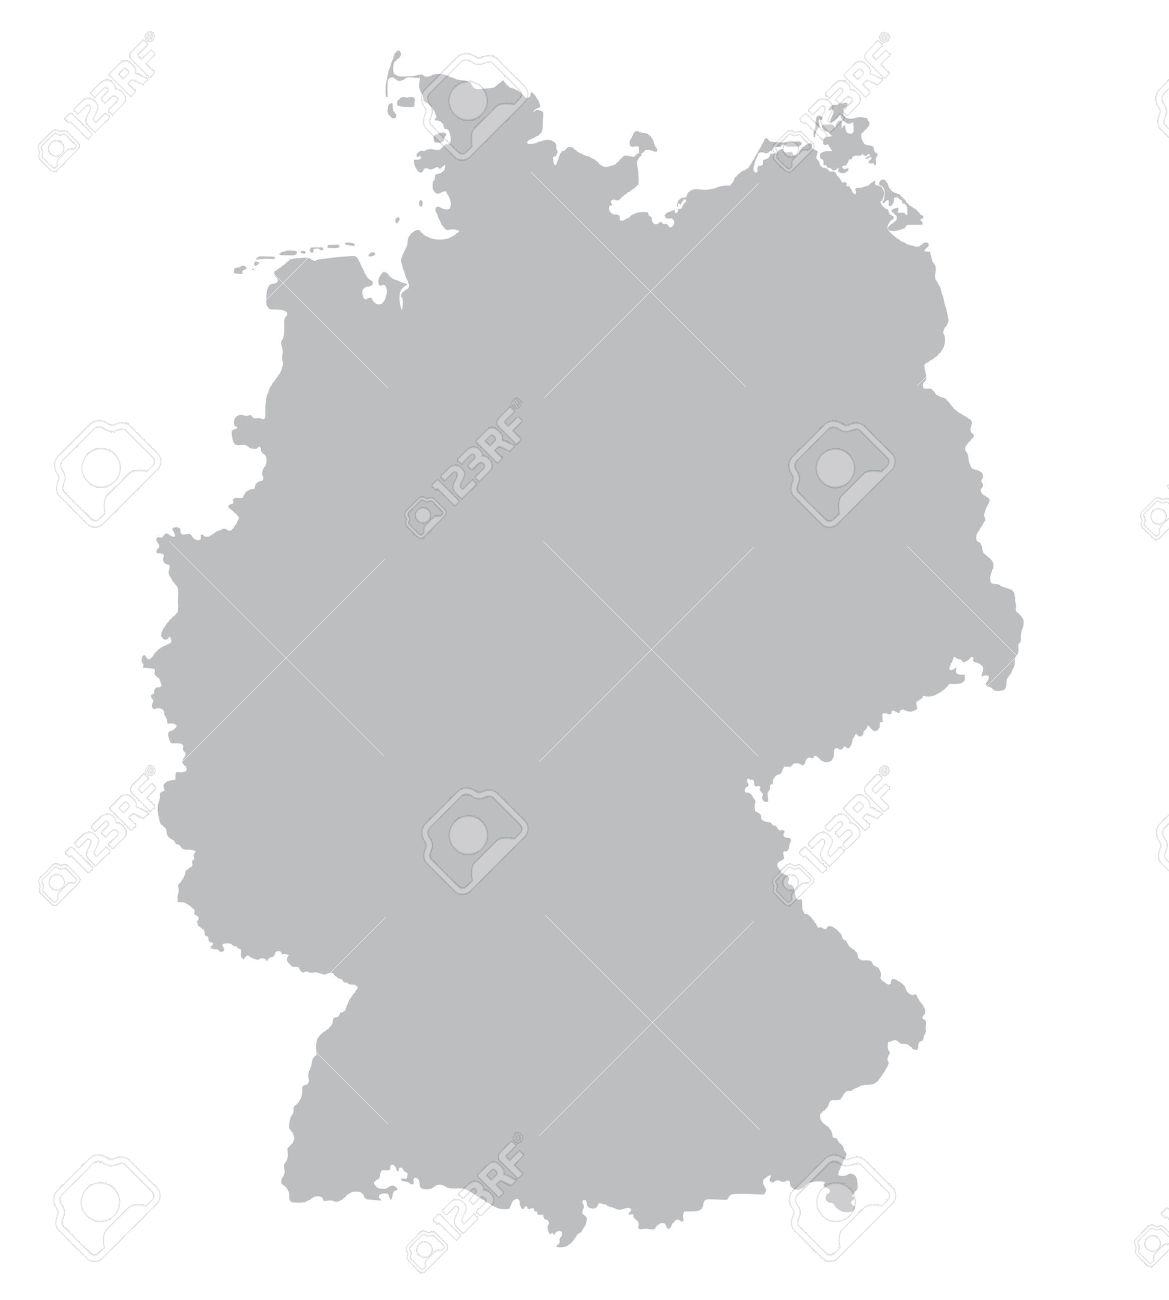 grey map of Germany - 36414832